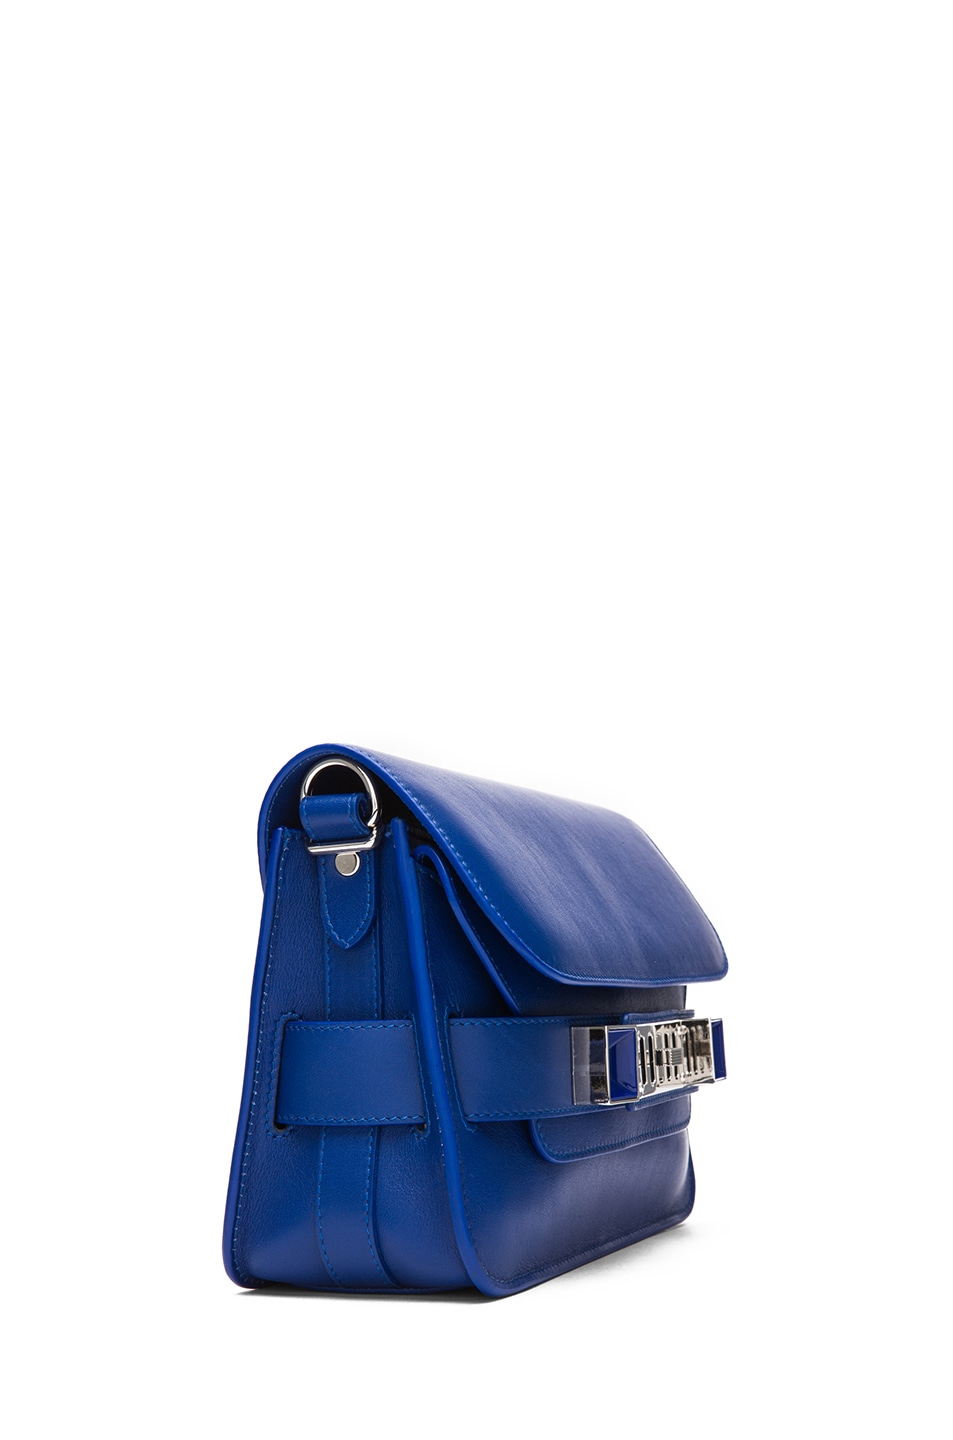 Image 3 of Proenza Schouler Mini PS11 Classic Smooth Leather Shoulder Bag in Royal Blue